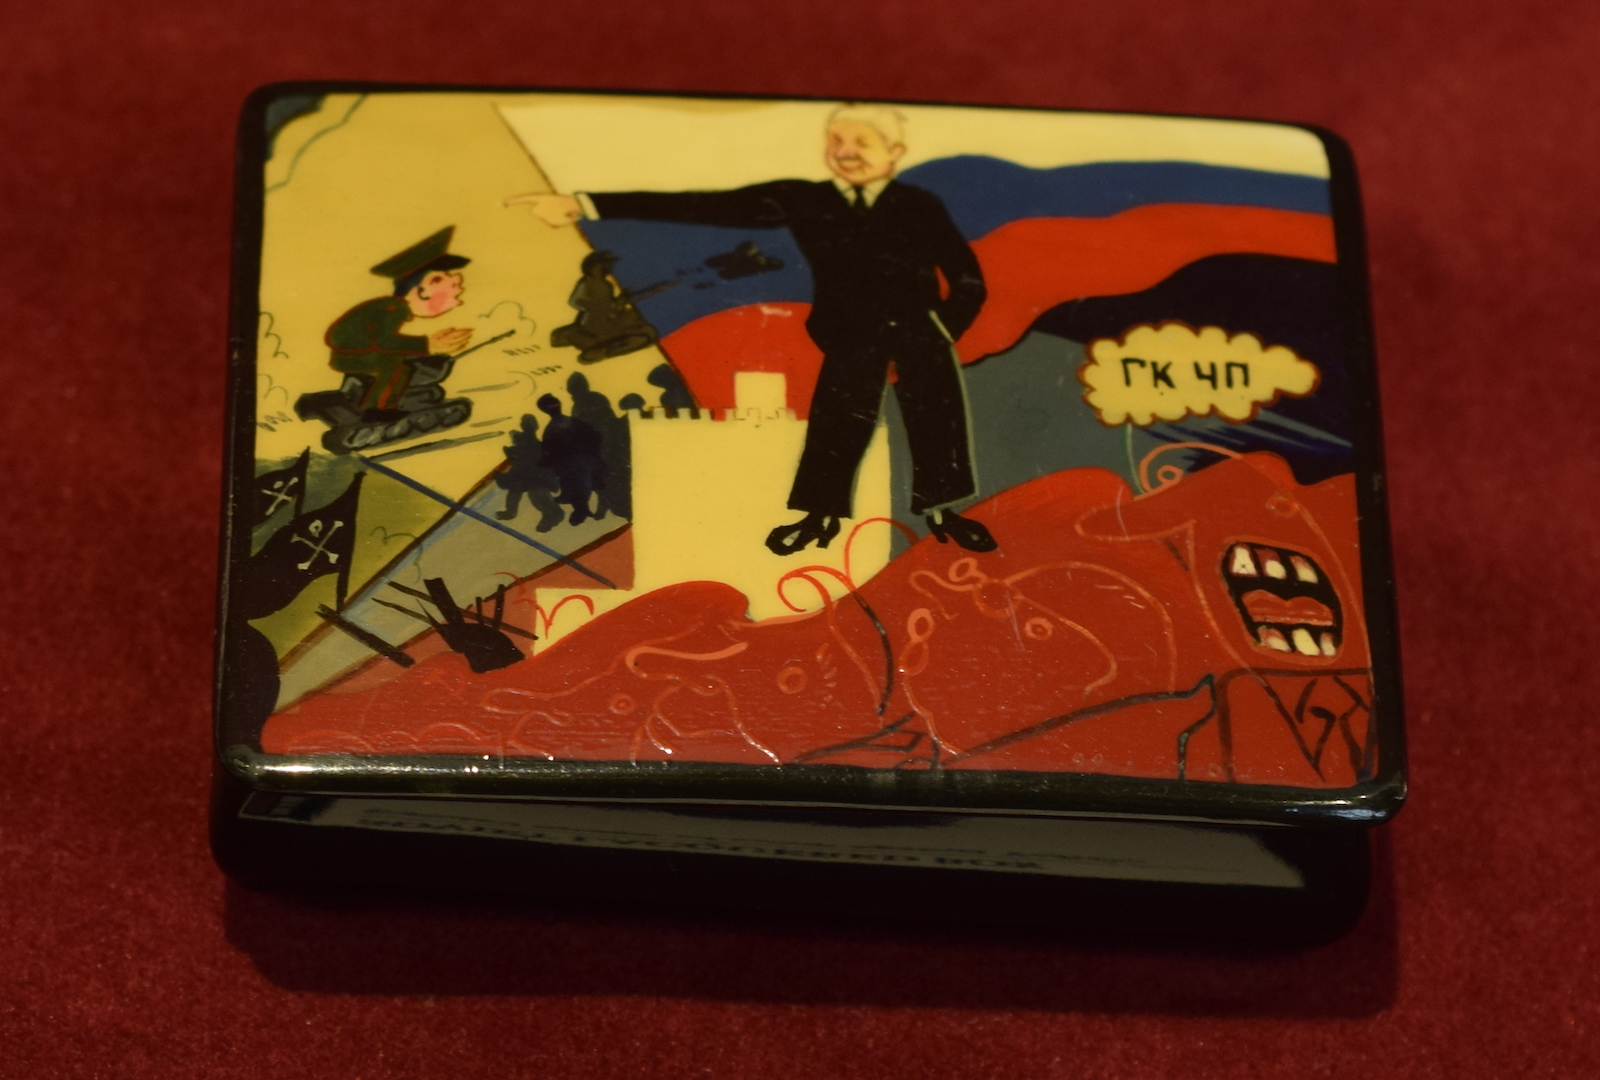 Soviet Lacquered Box, Painted image of coup against Yeltsin